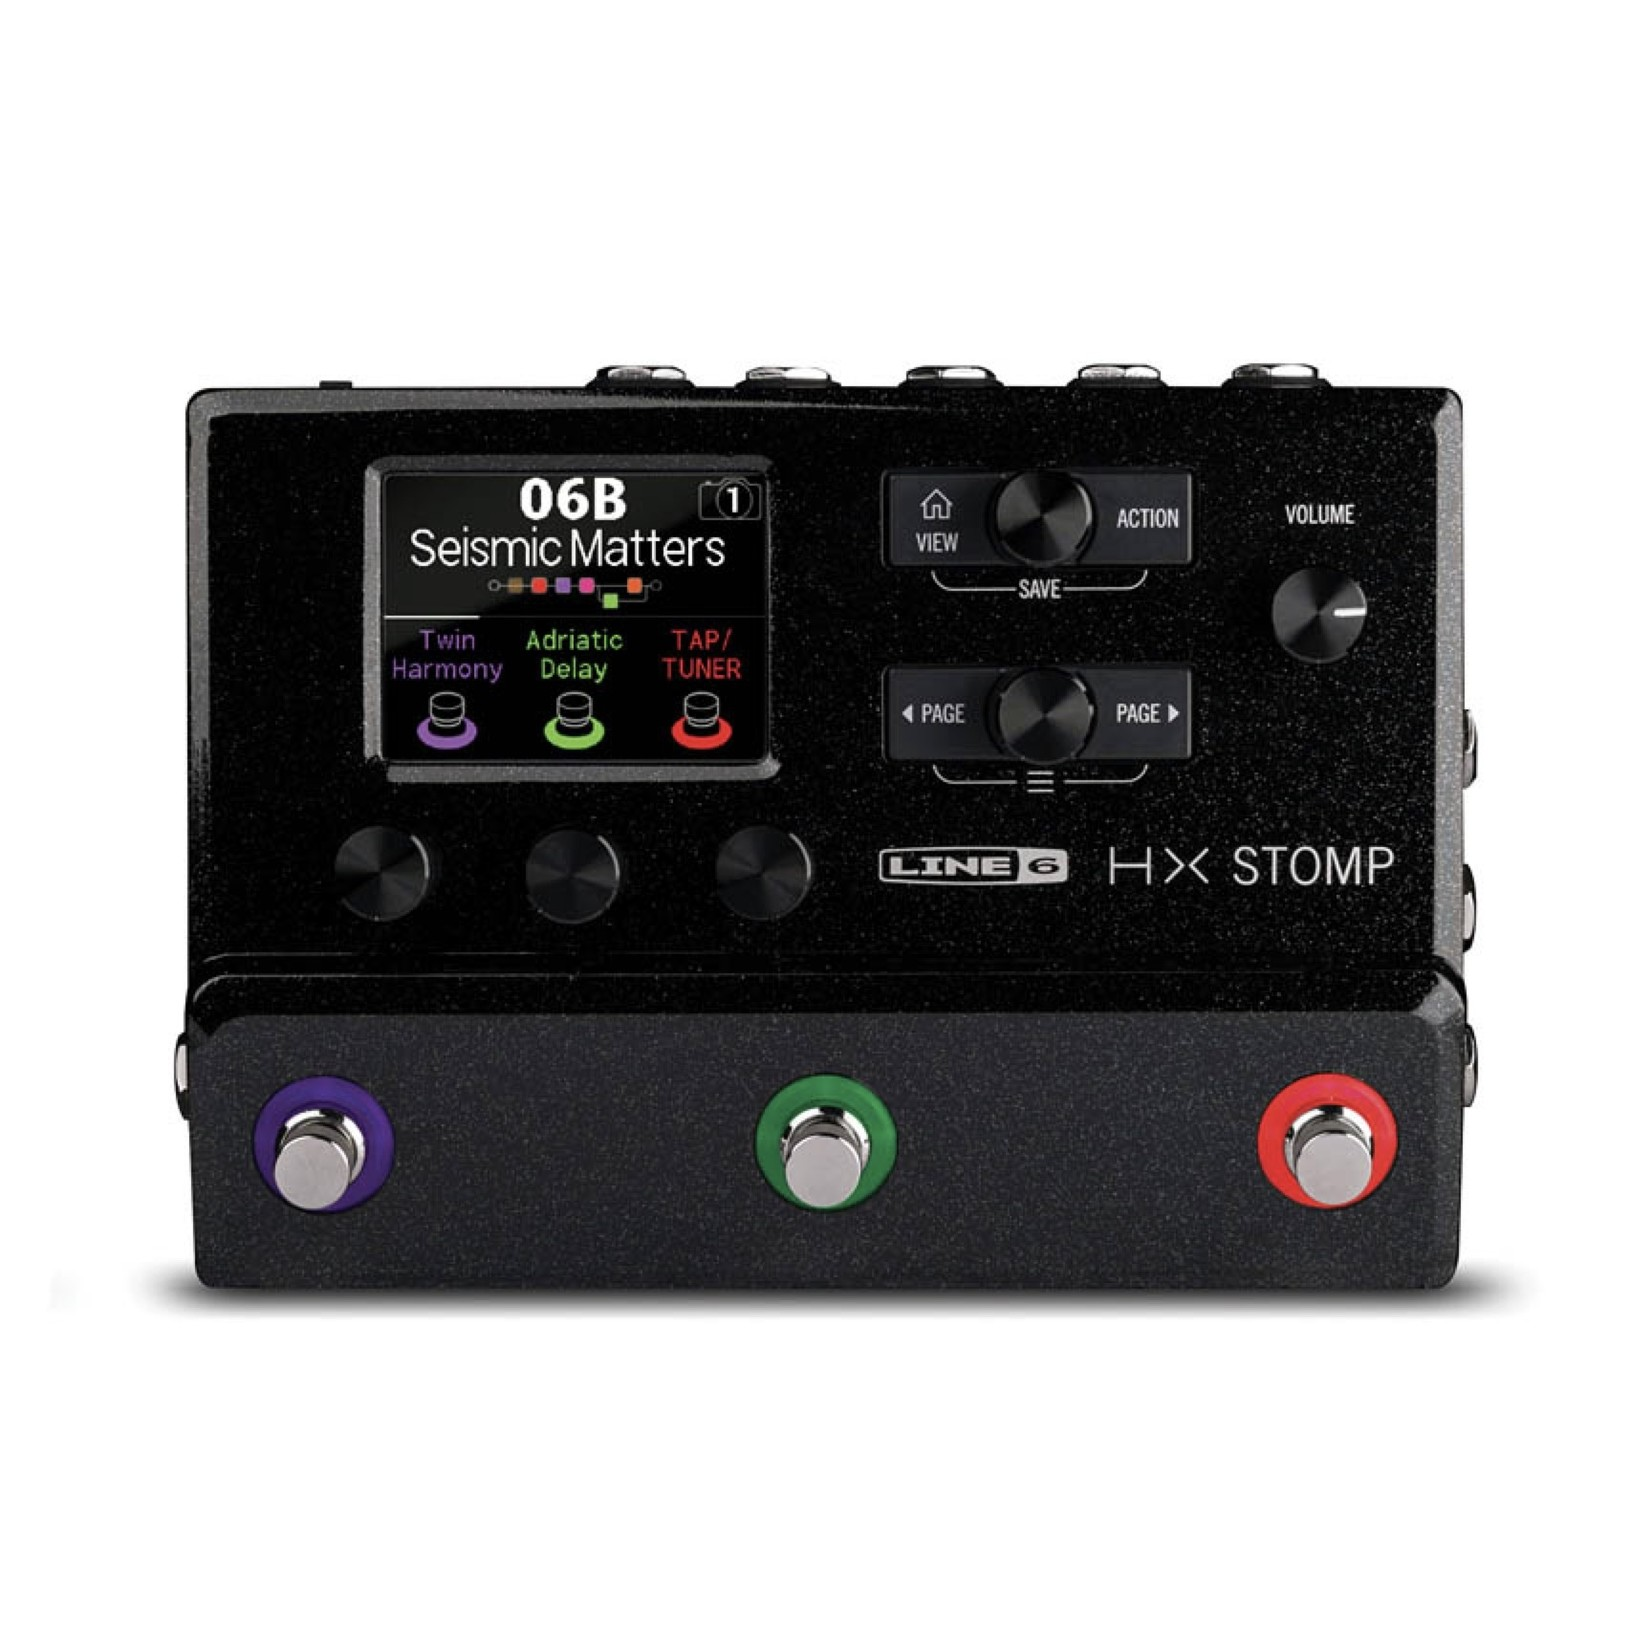 Line 6 Line 6 HX Stomp Multi-Effects, Compact Professional Guitar Processor (for guitar or bass)